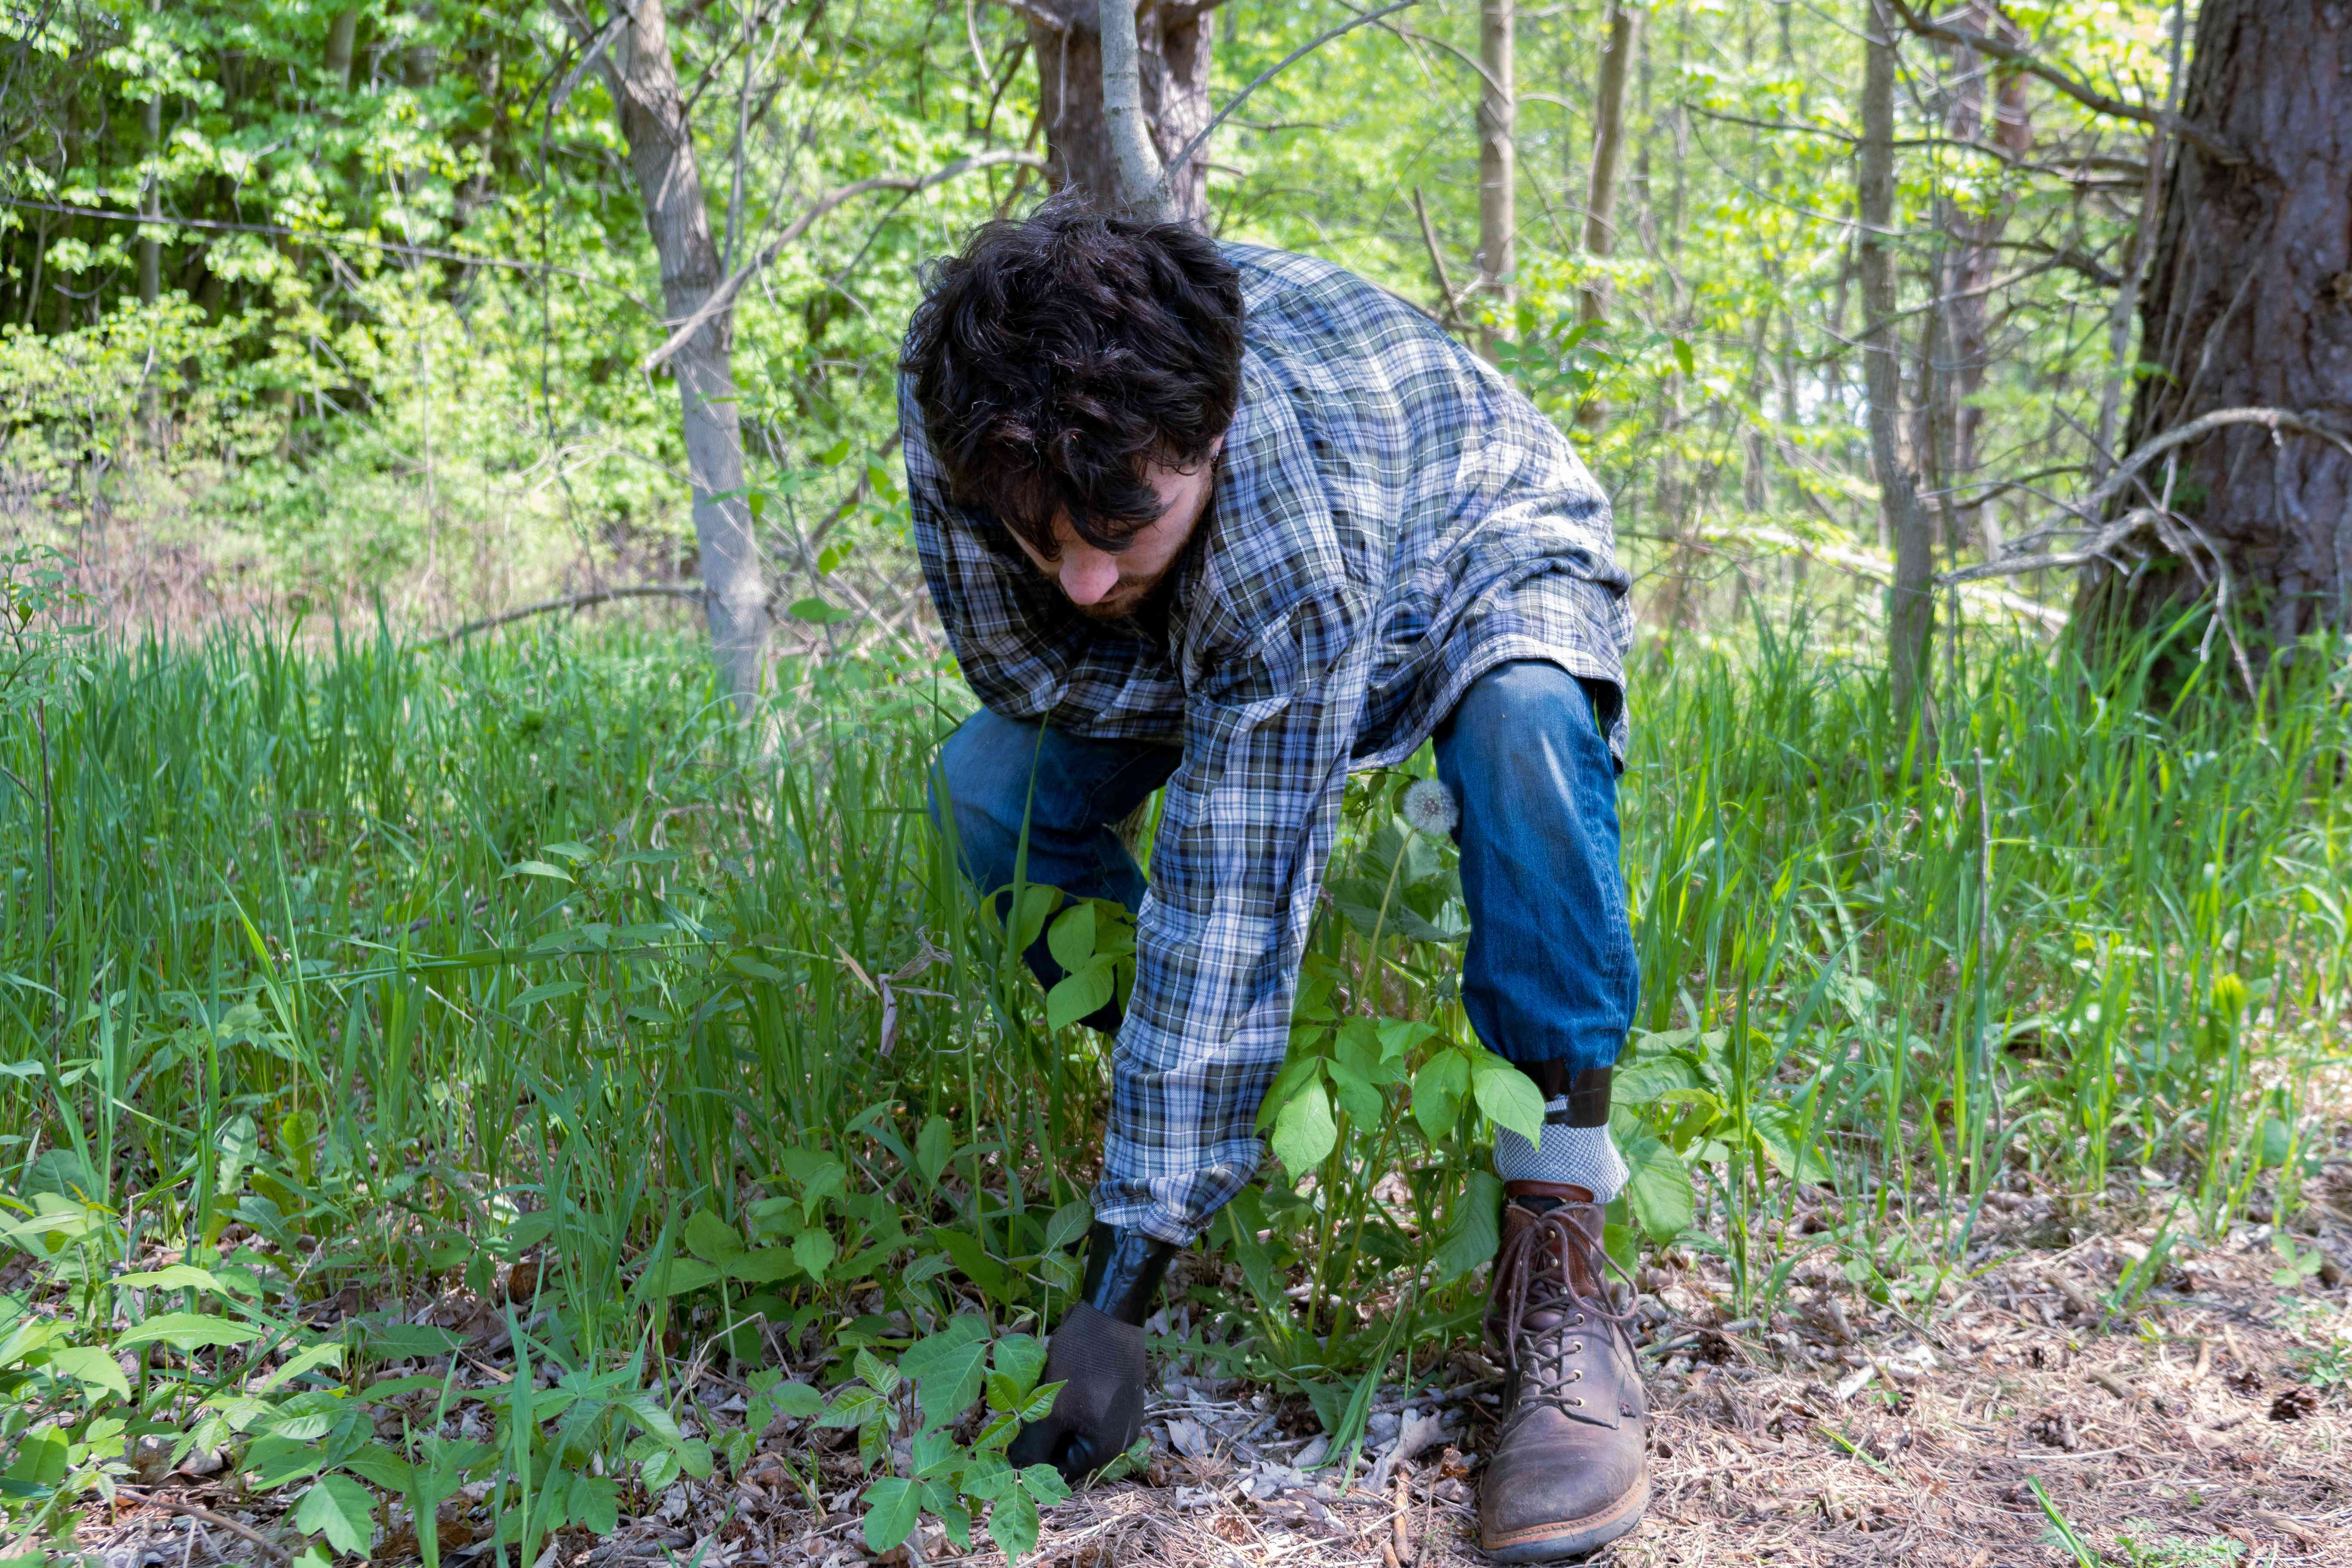 man wearing long-sleeved shirt and duct-taped pants pulls up poison ivy from forest floor